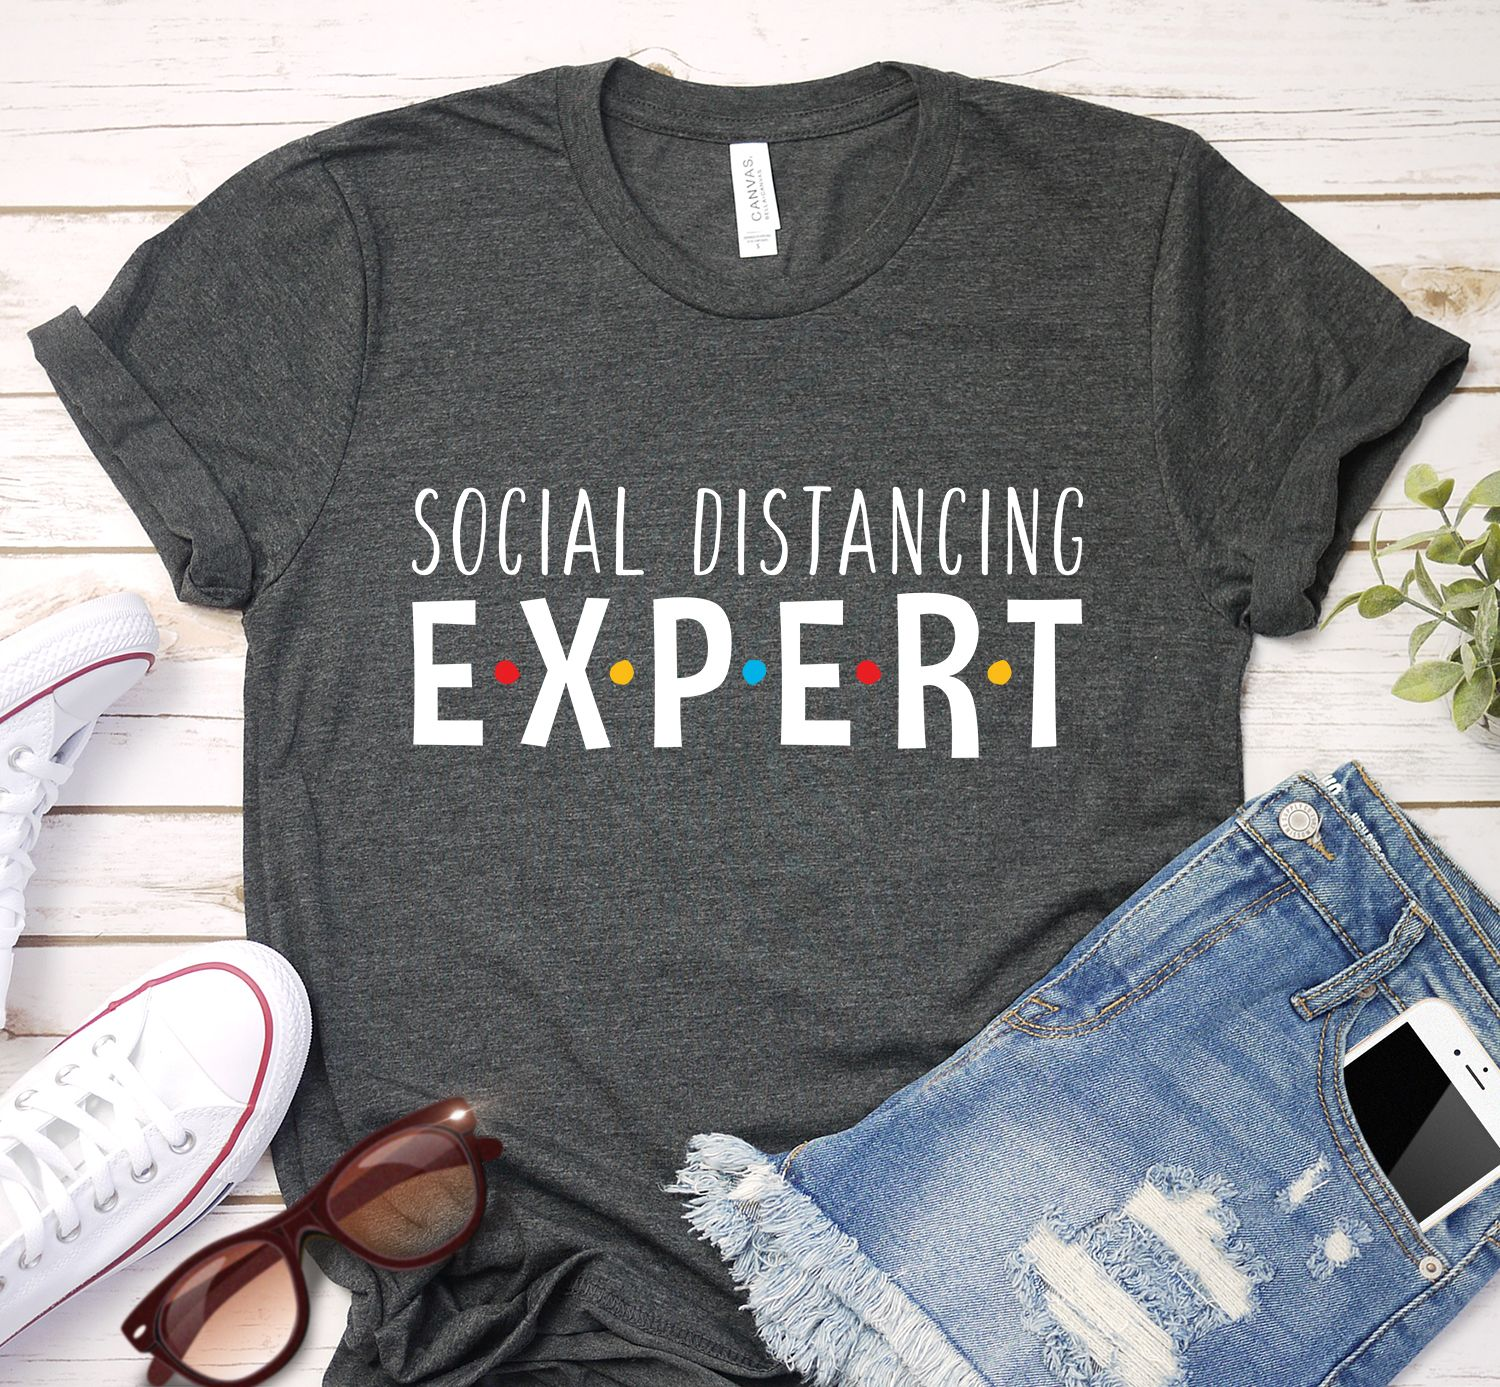 Social Distancing Expert Shirt in 2020 Love shirt